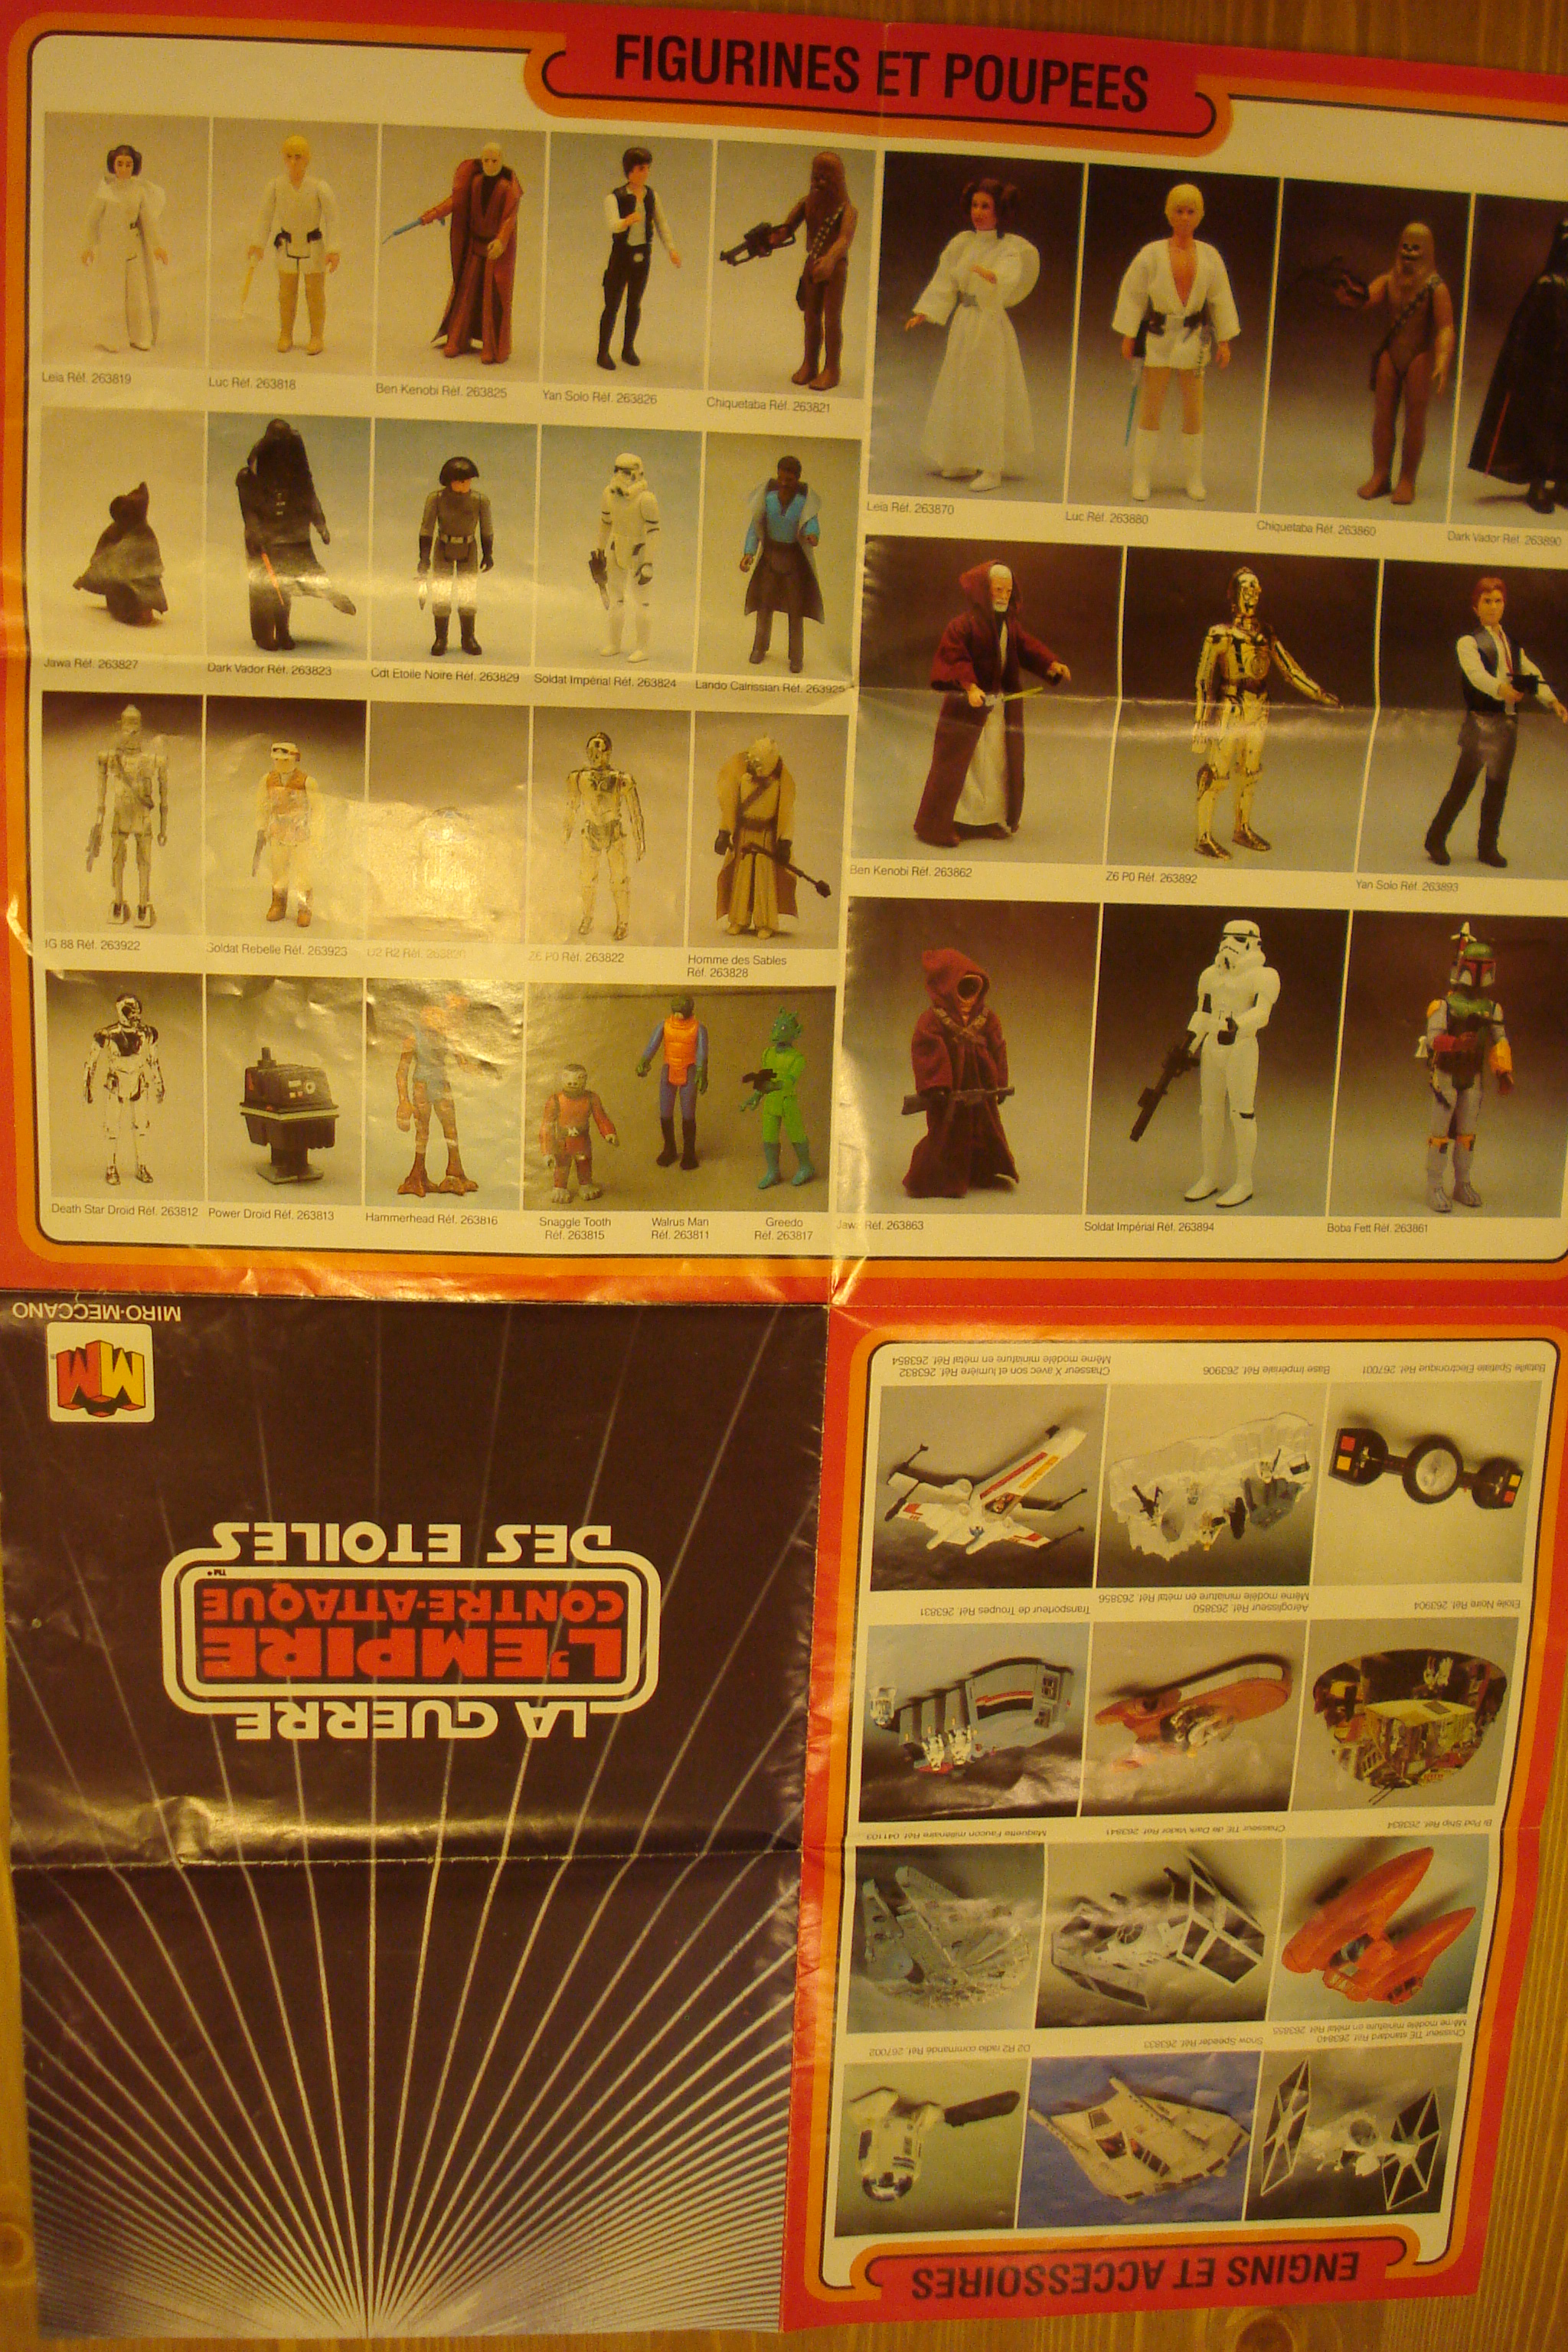 Collecting Vintage Paper Work that show Vintage Star Wars Toys! - Page 8 Www.tvn.hu_68637d8cbbc27cf8213312a9a424fbfa